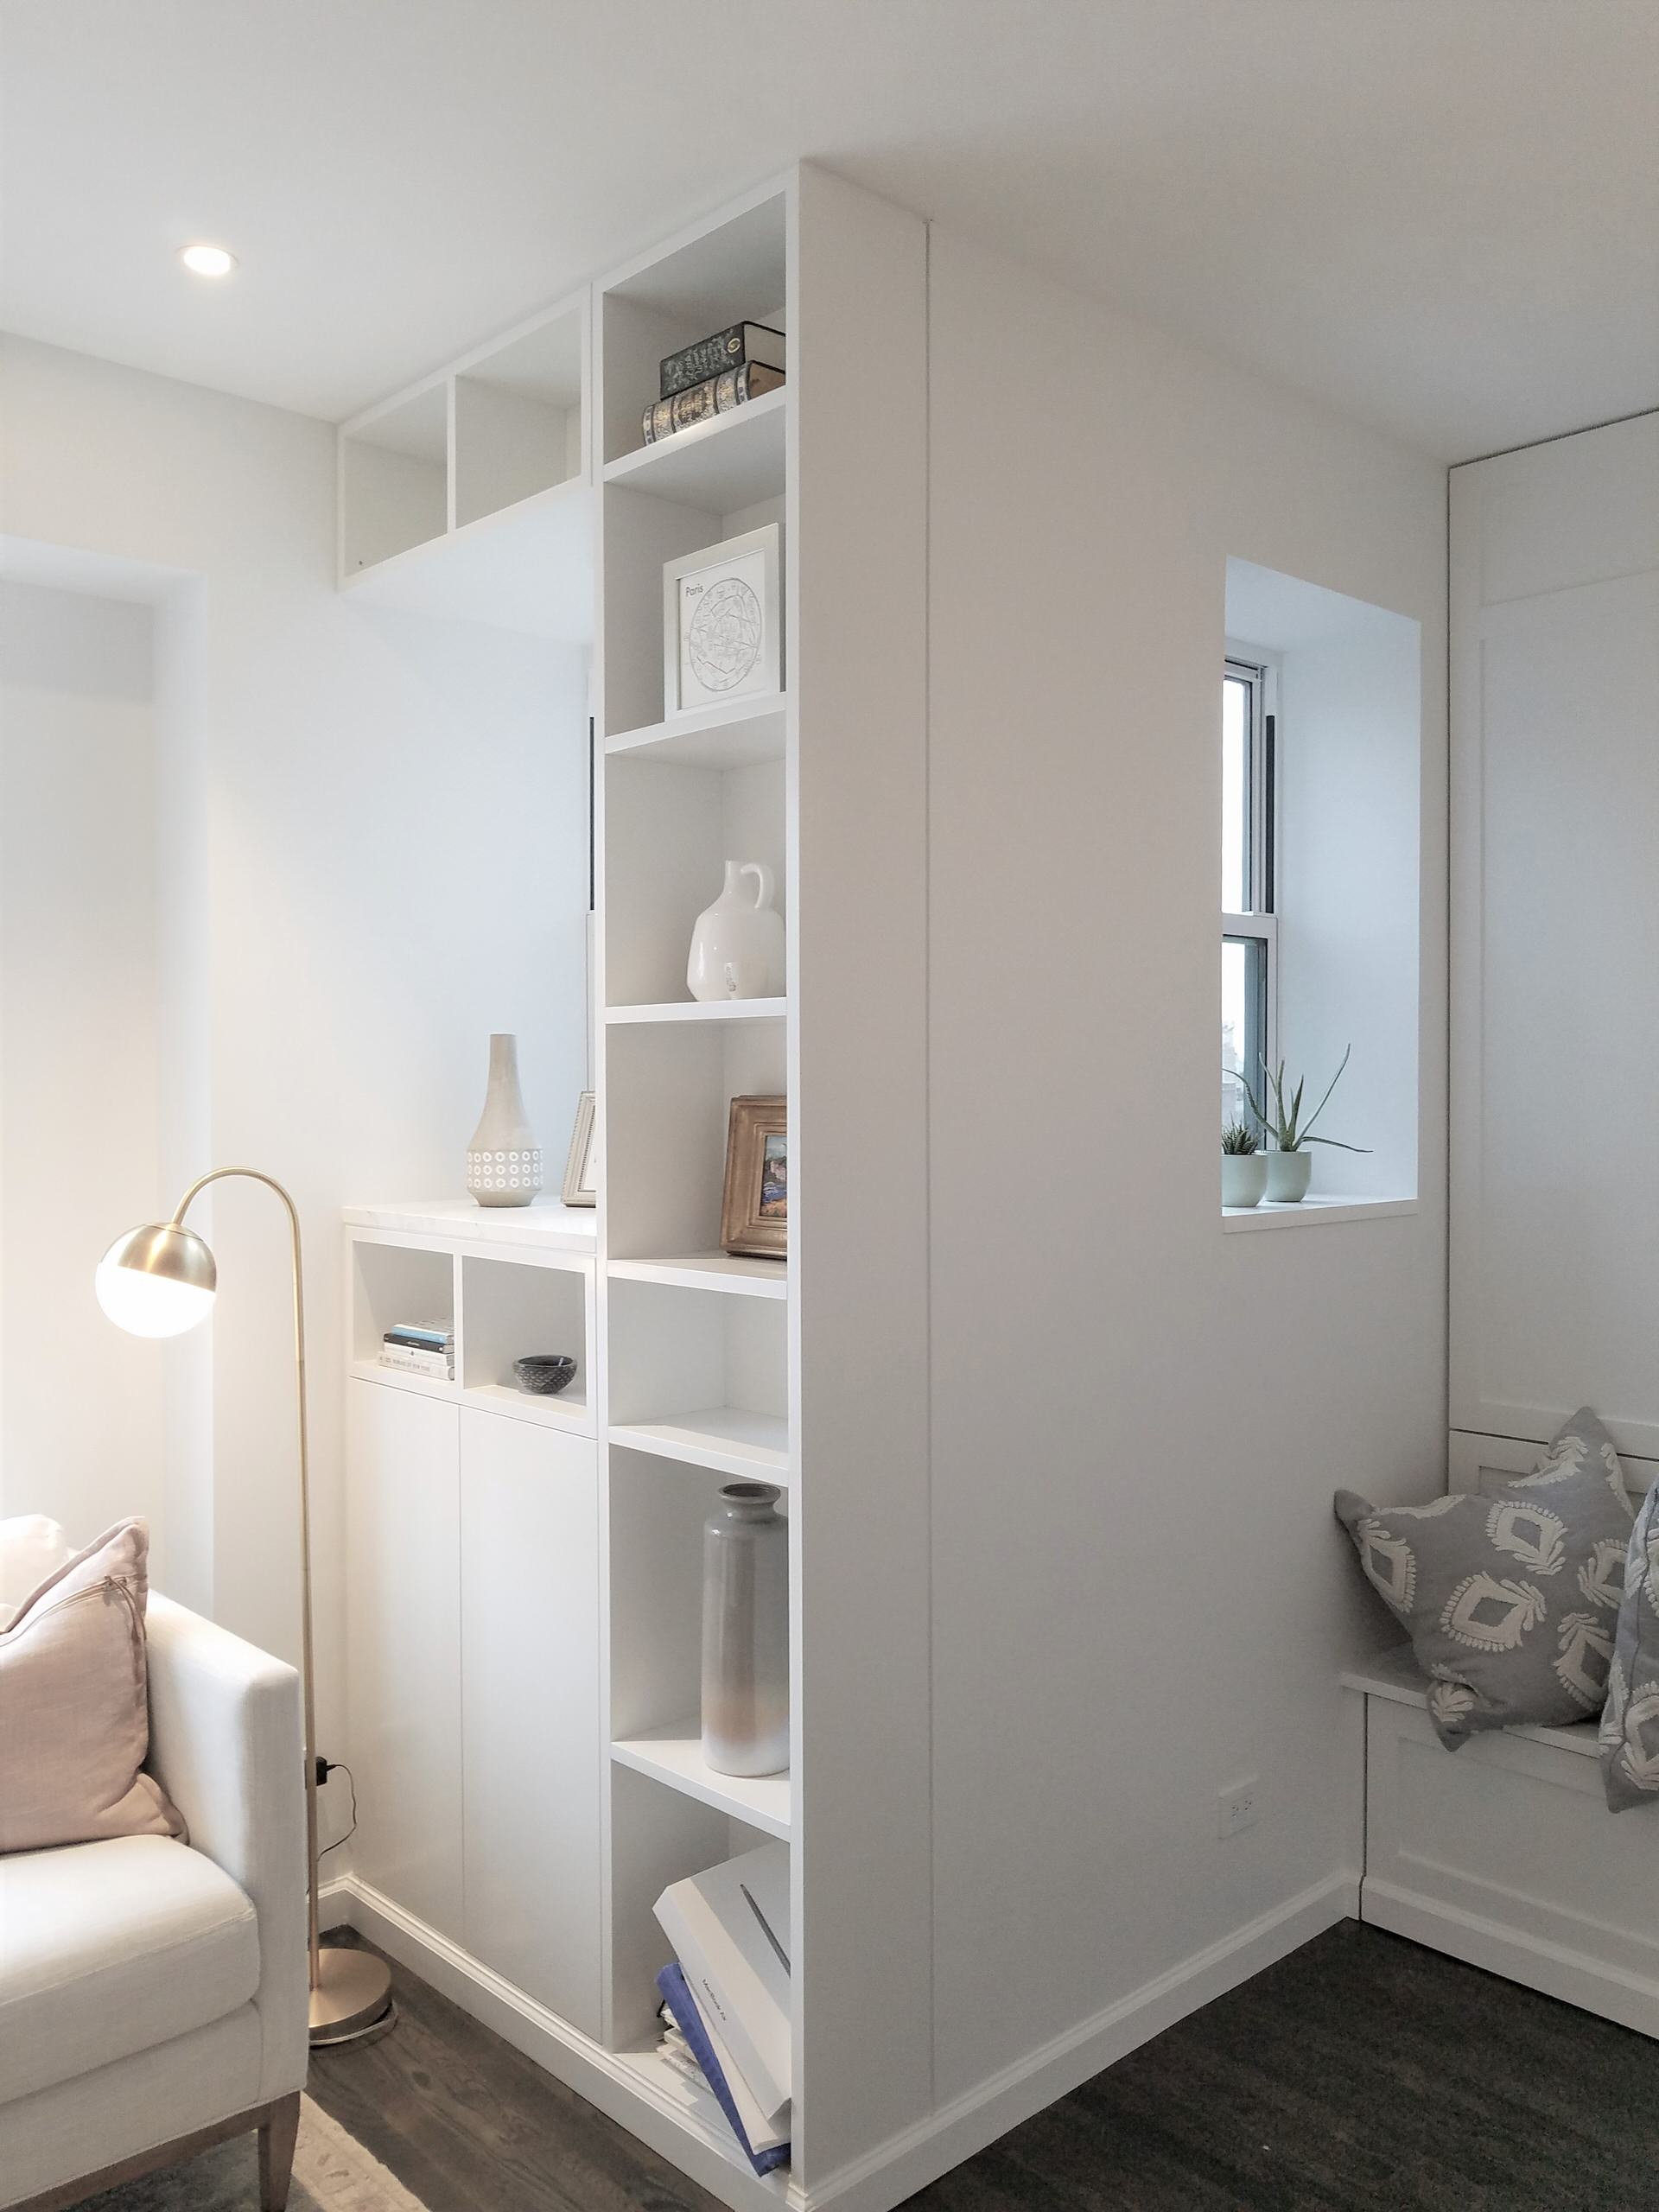 Maximizing small NYC apartment spaces